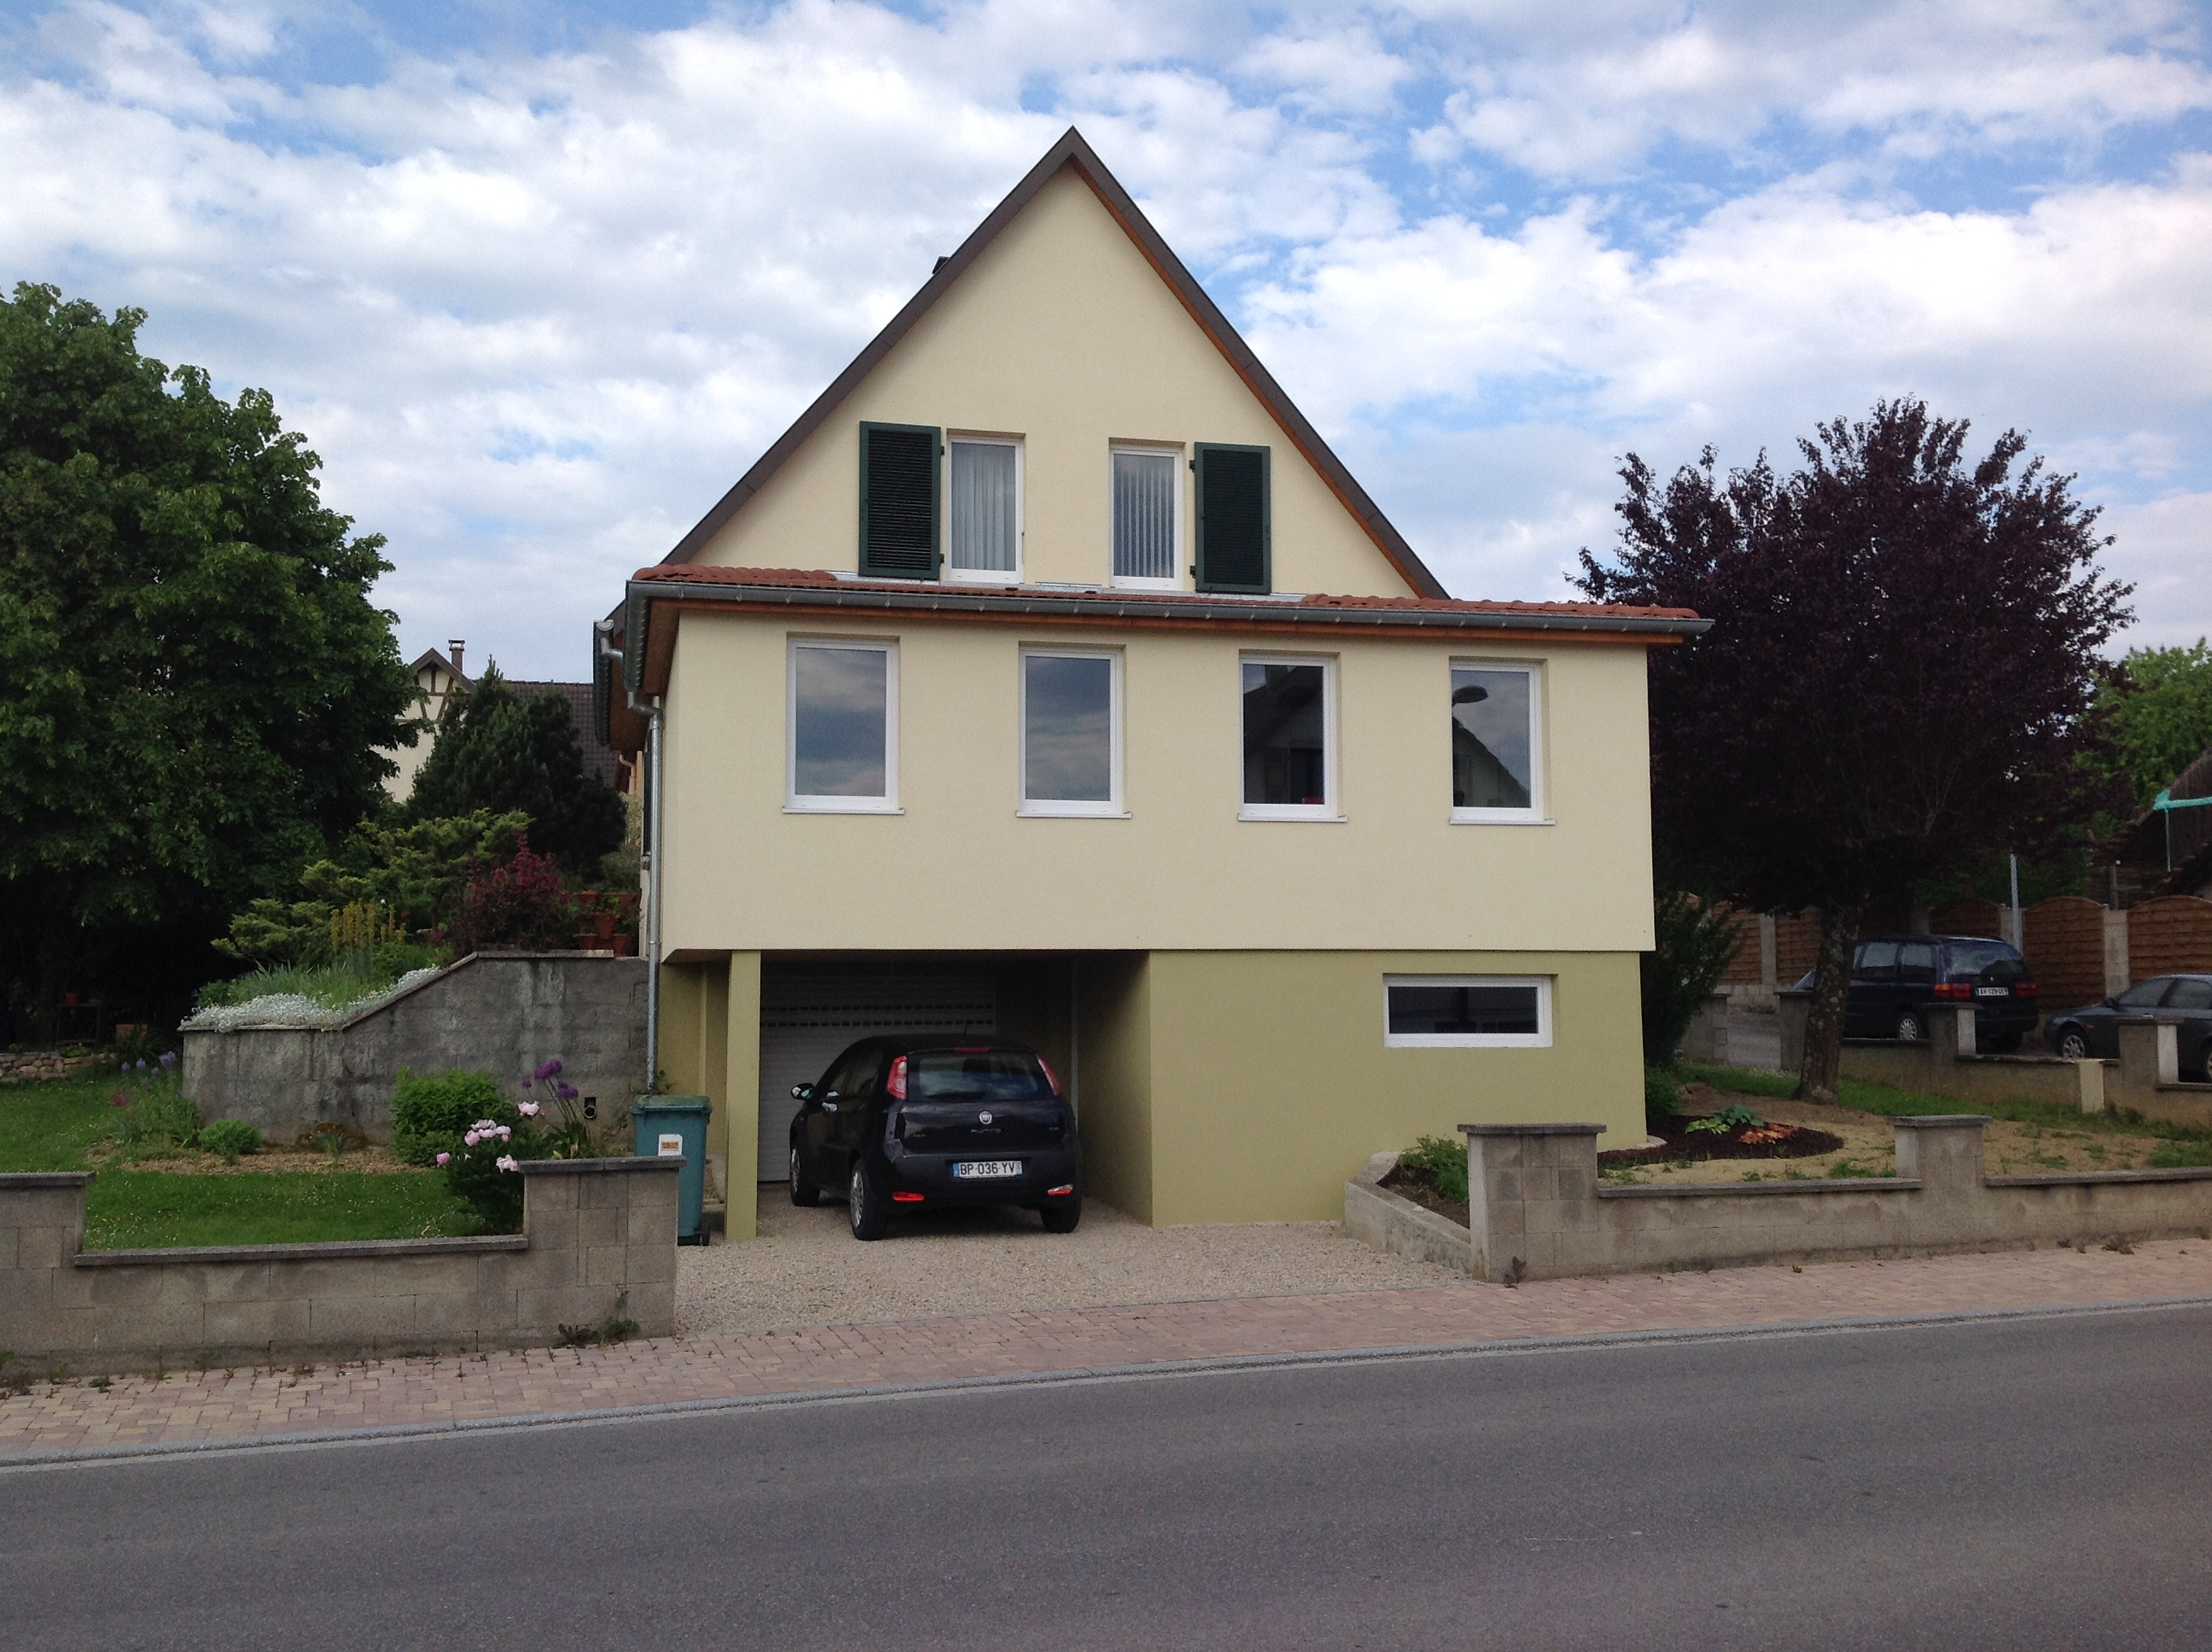 Extension de maison en ossature bois abt construction bois for Extension etage ossature bois